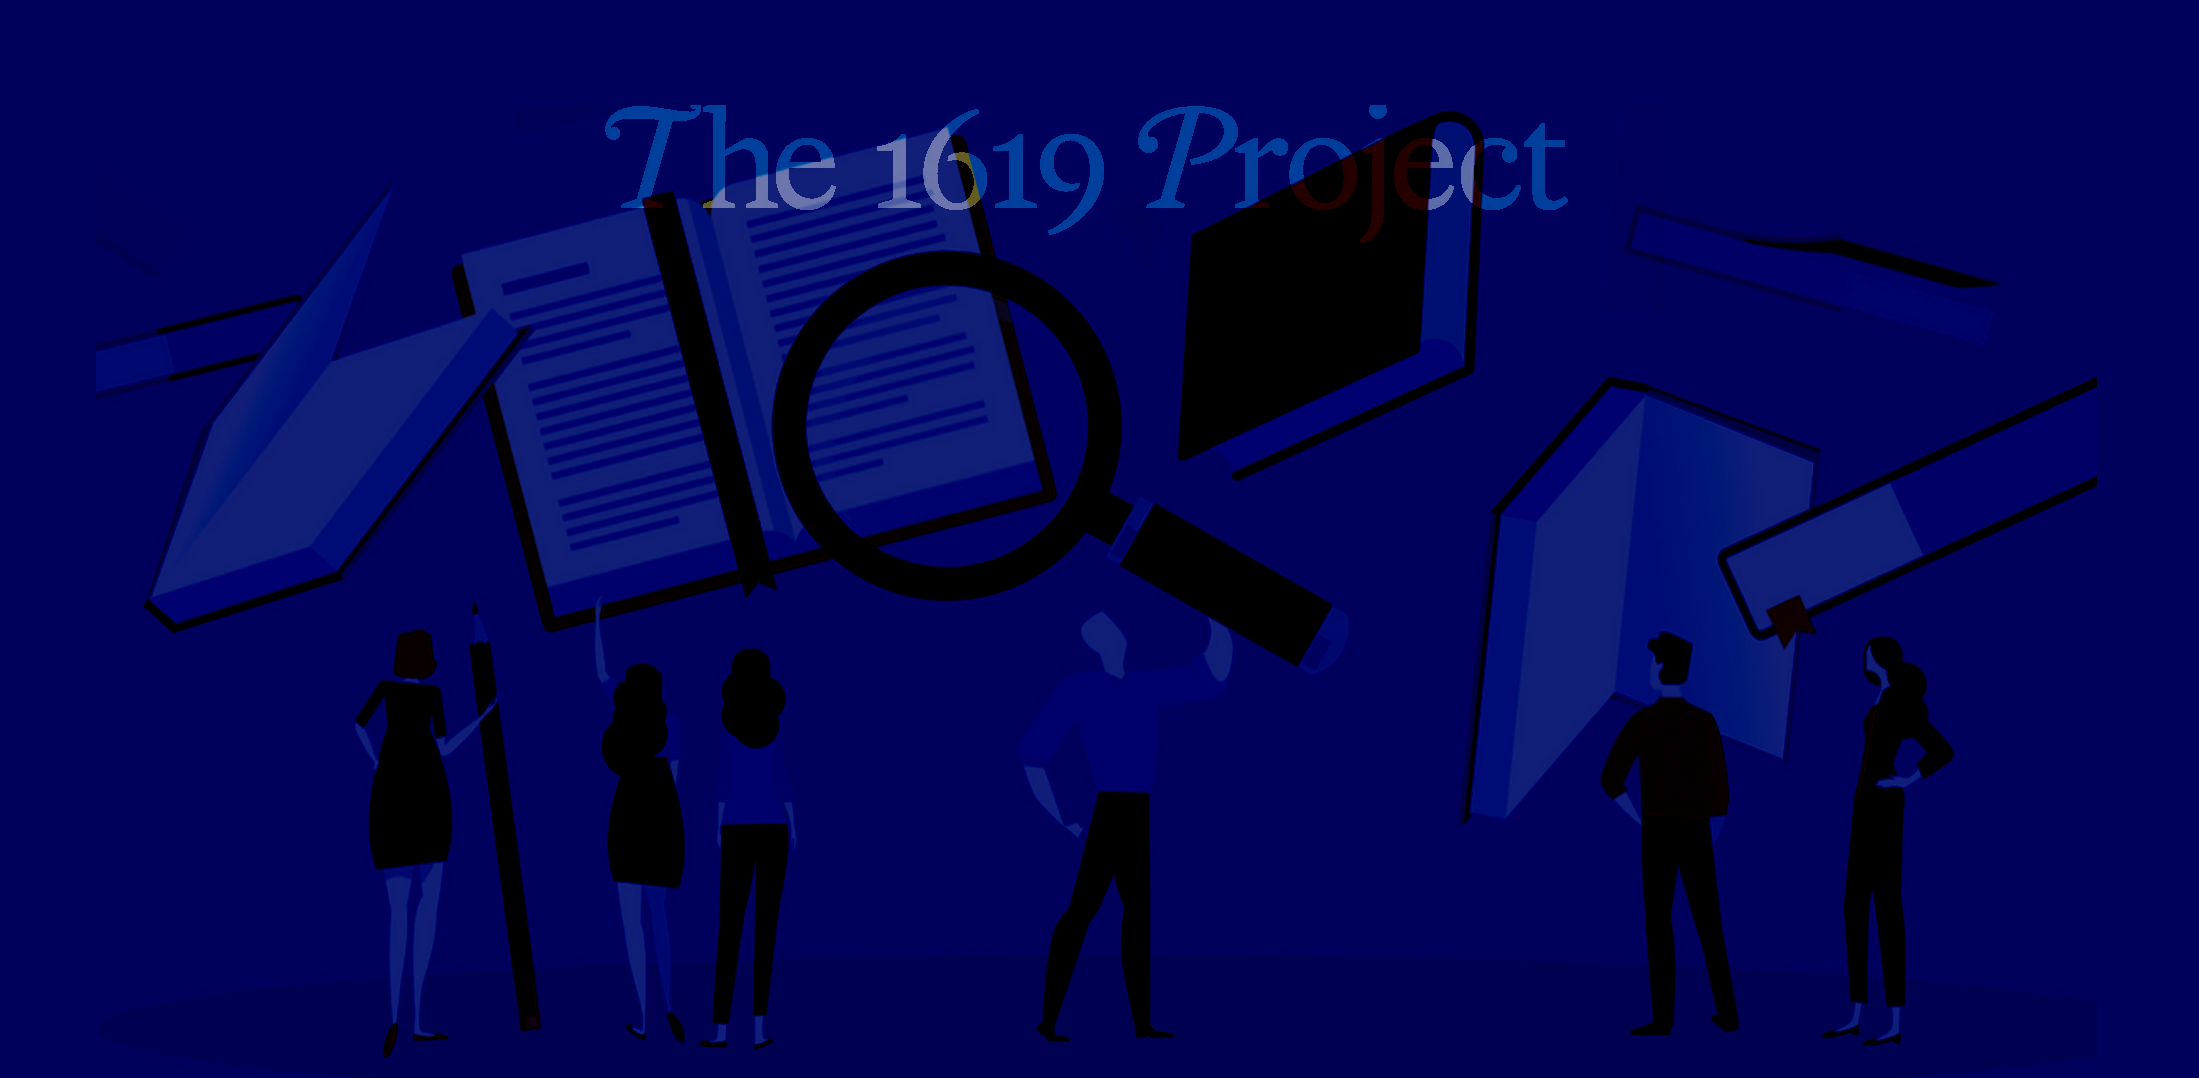 Lawmakers Intro Bill Against The 1619 Project Curriculum